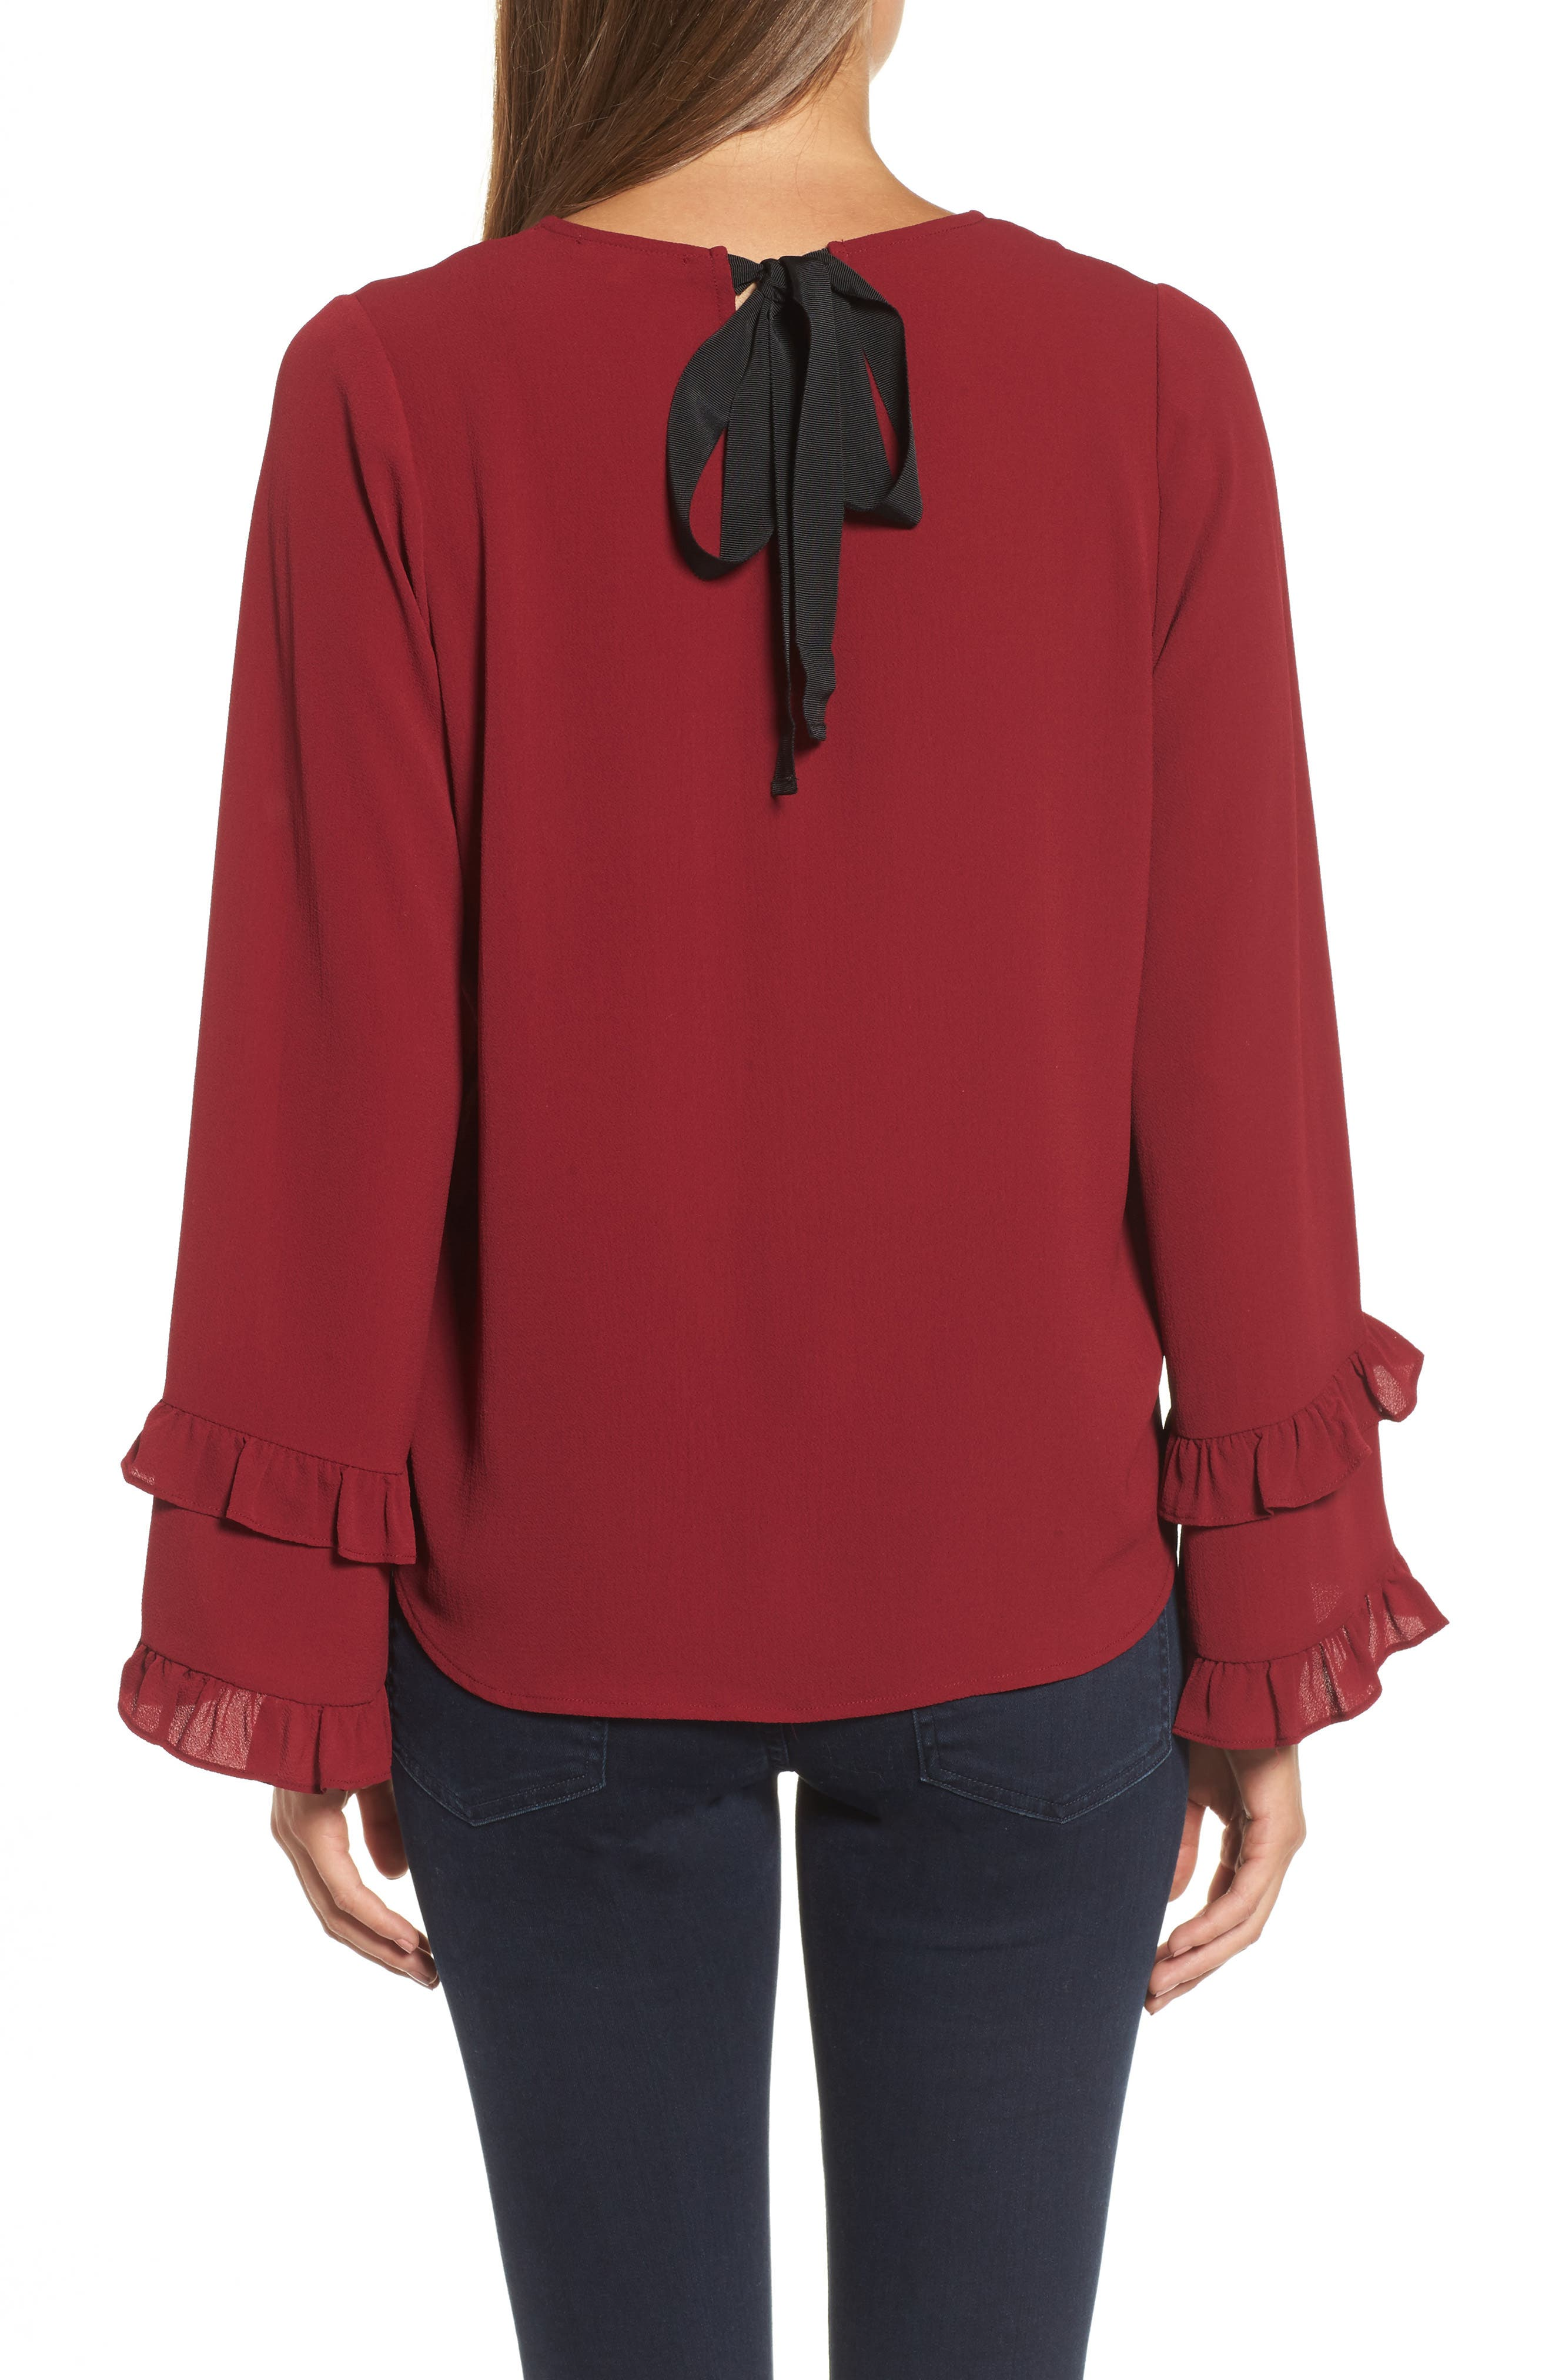 Ruffle Bell Sleeve Top,                             Alternate thumbnail 2, color,                             Wine